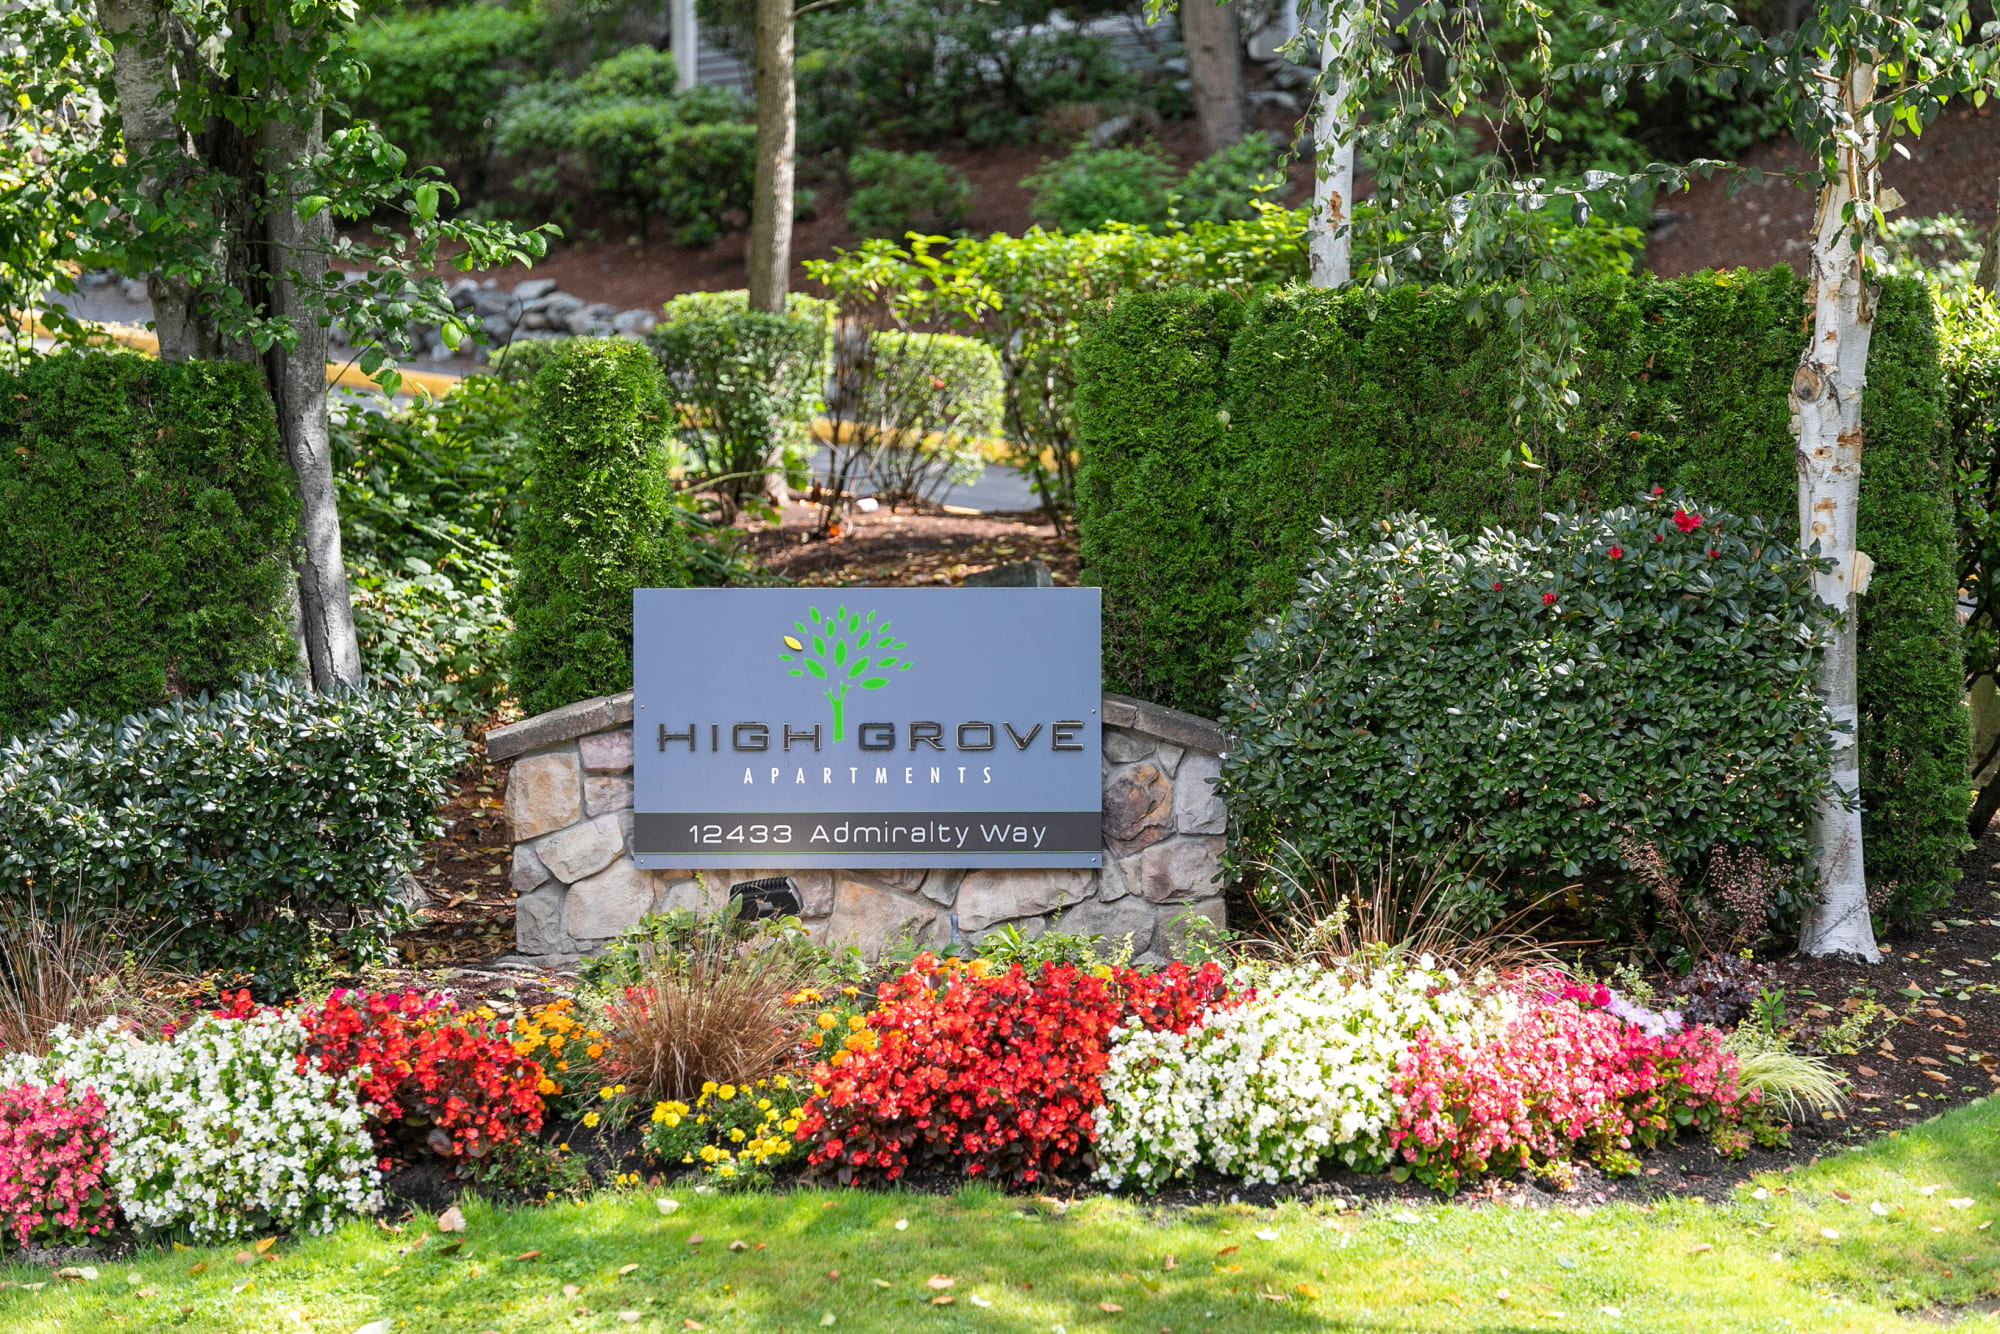 The monument sign surrounded by flowers at HighGrove Apartments in Everett, Washington